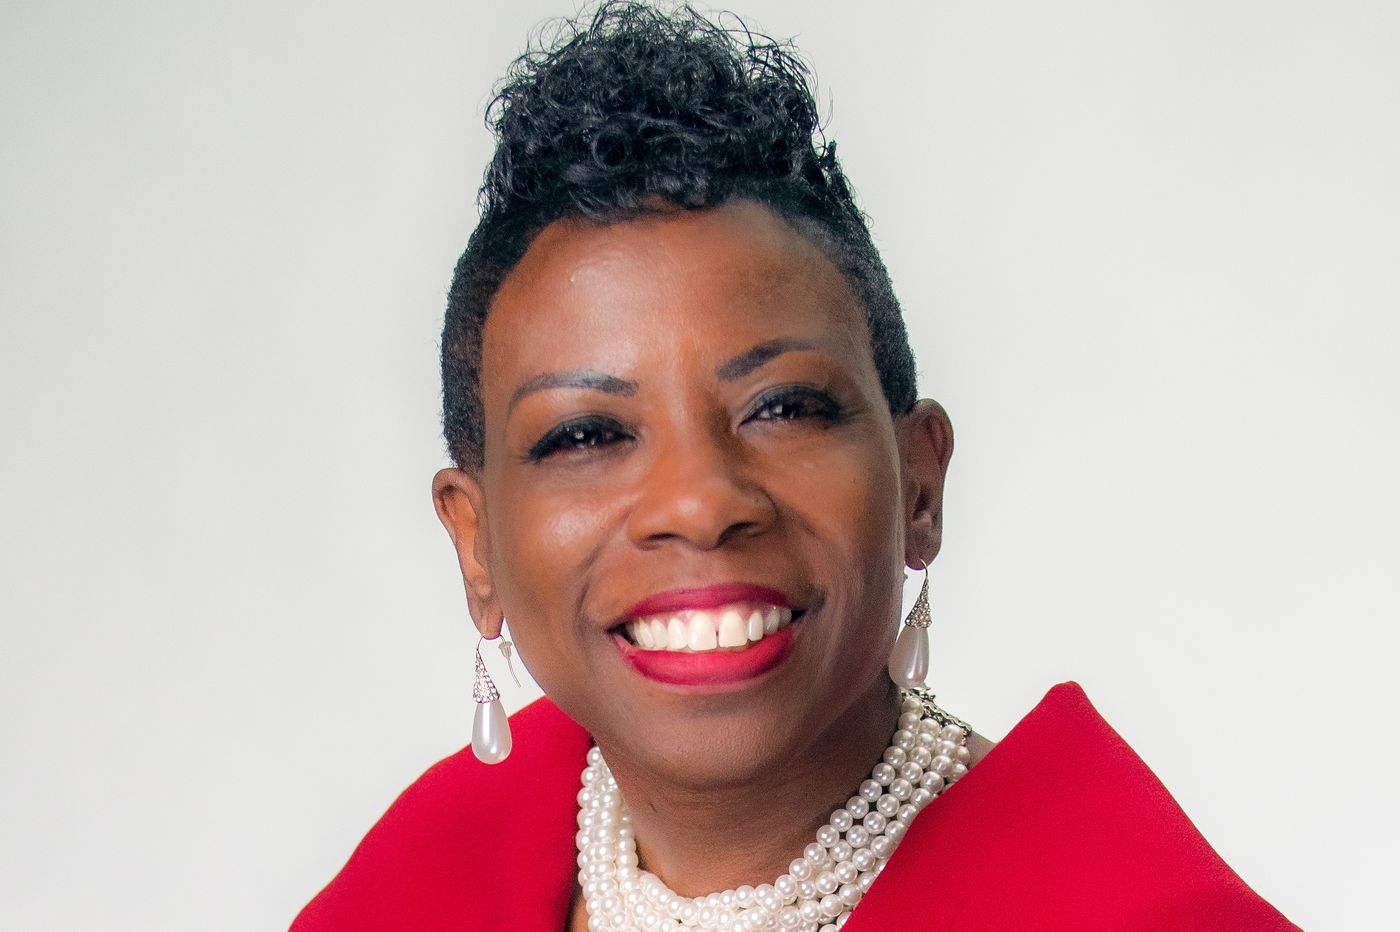 As Chester Upland considers expanding charter schools, its new superintendent says she has 'no preference' on management